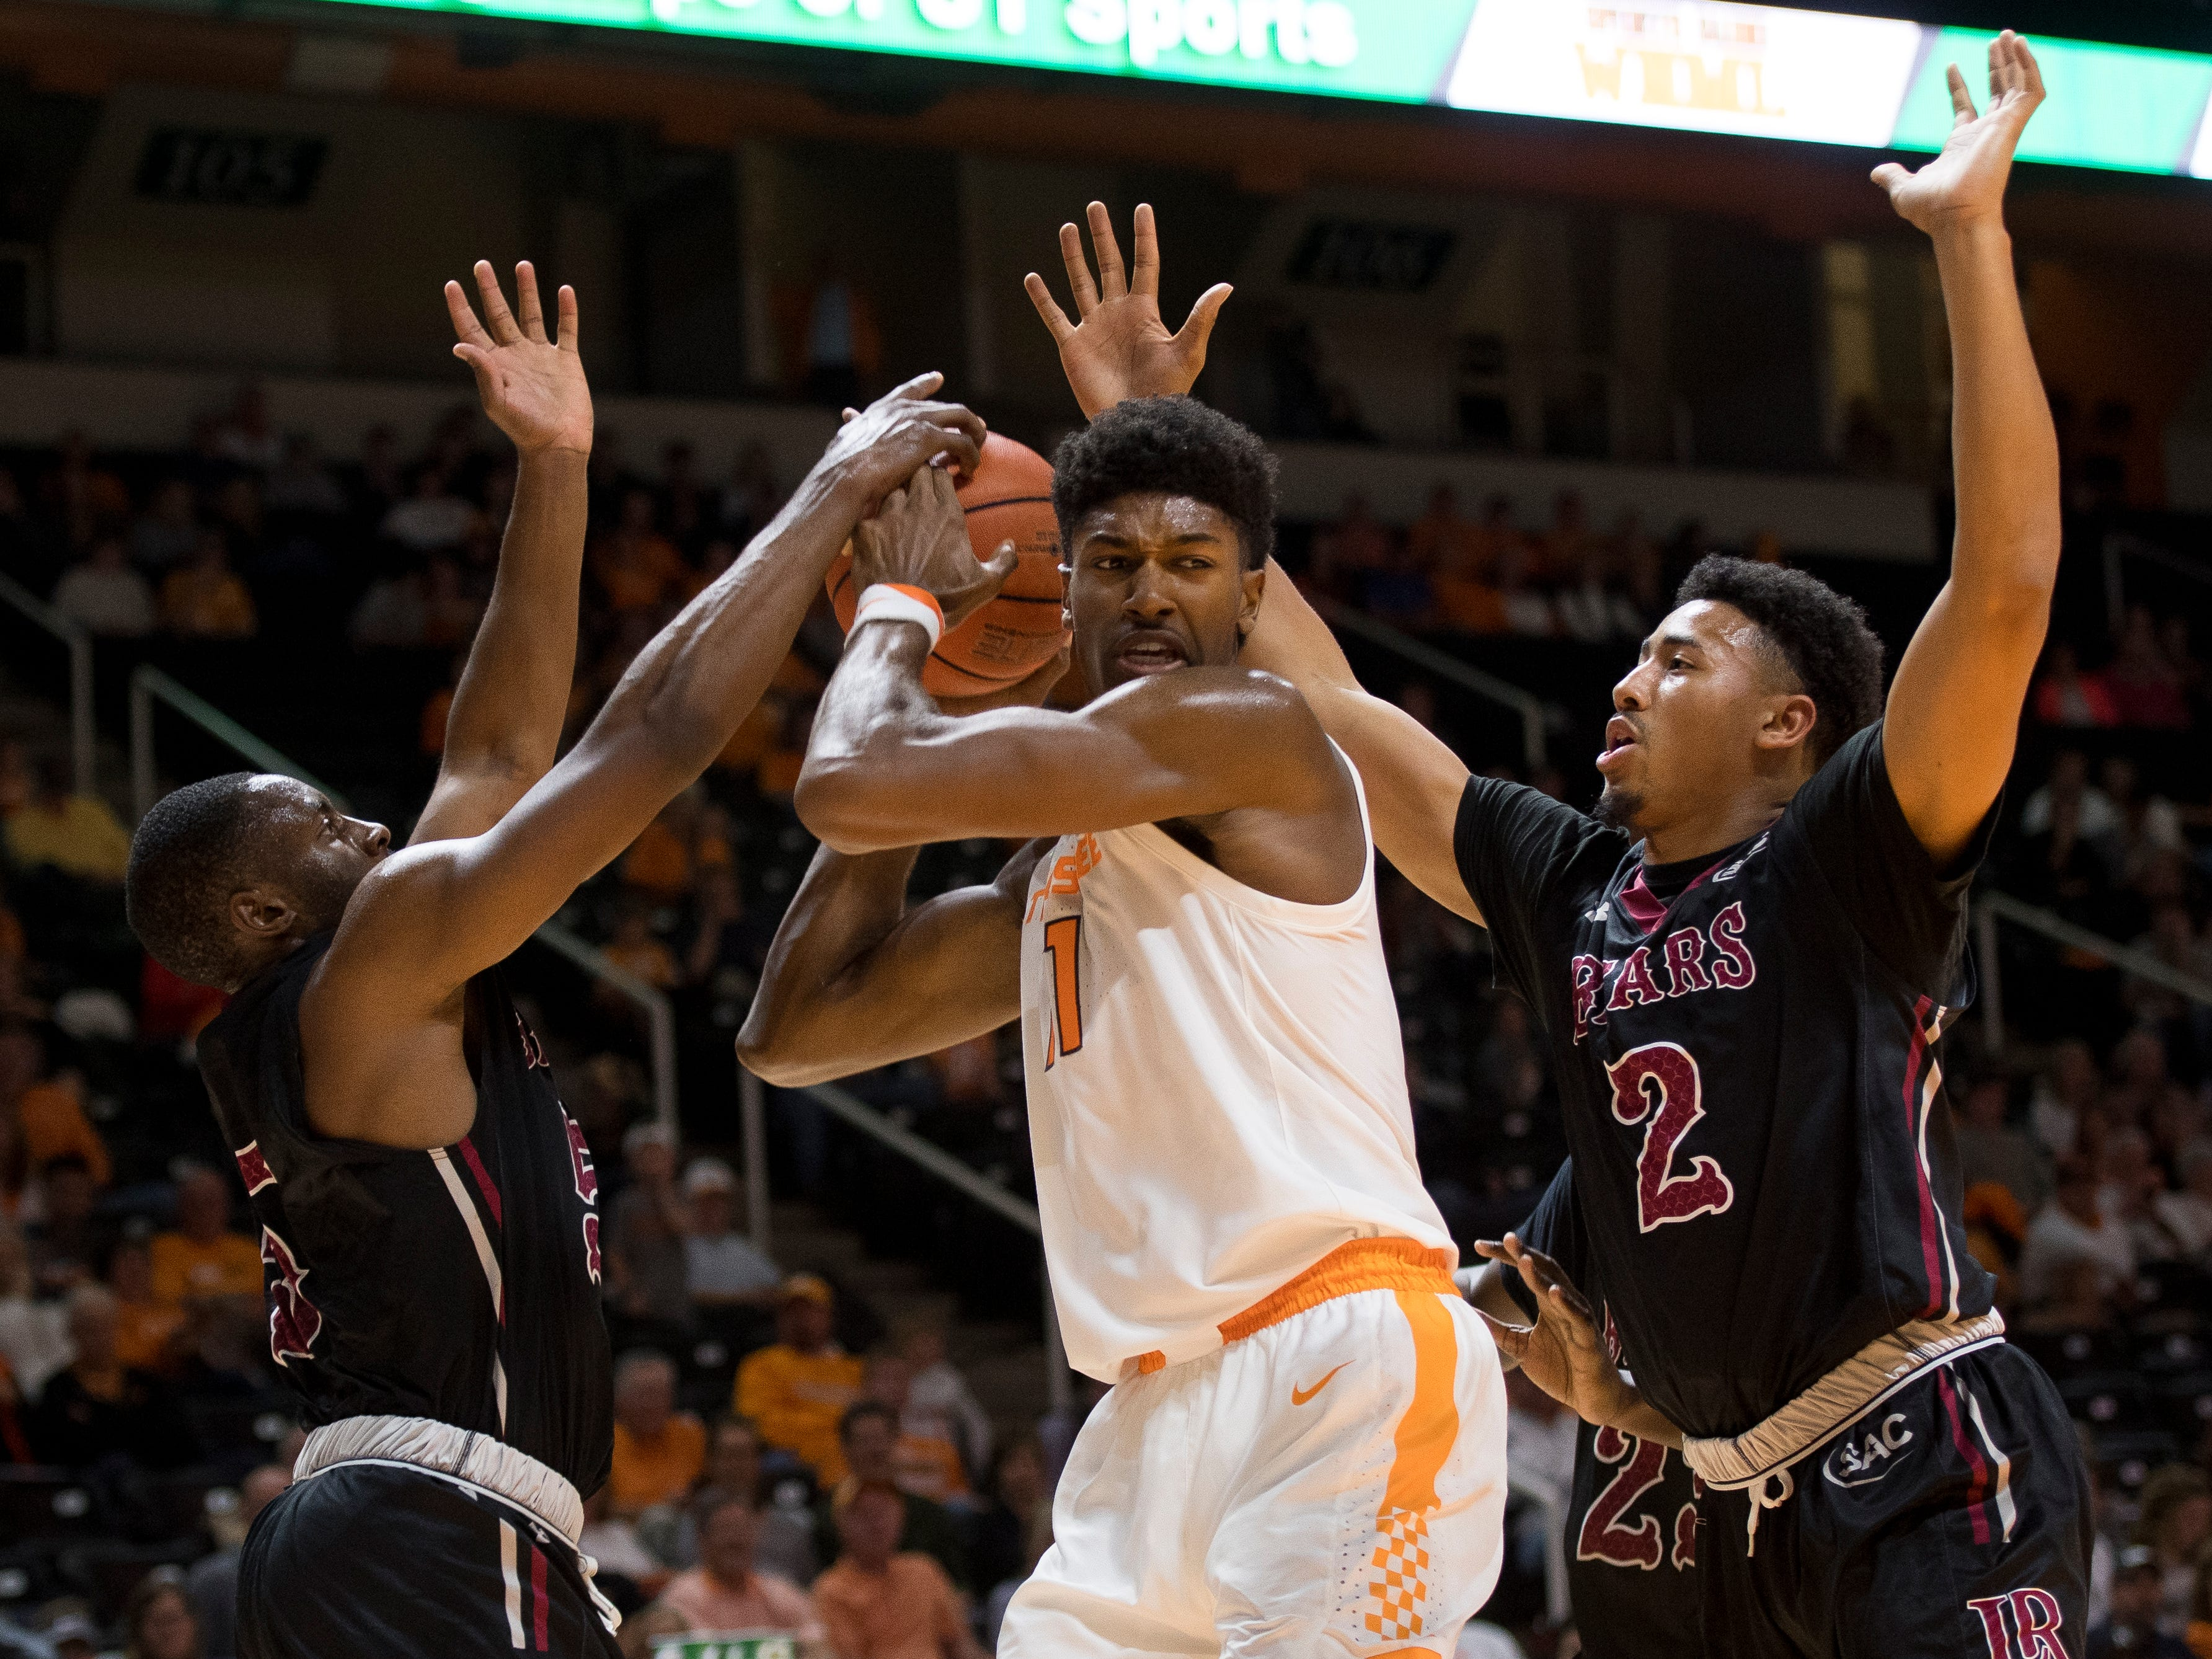 Tennessee forward Kyle Alexander (11) fights off Lenoir-Rhyne guard Khaileel Dailey (2) and Lenoir-Rhyne guard Jalen Johnson (5) during Tennessee's basketball game against Lenoir-Rhyne at Thompson-Boling Arena in Knoxville on Tuesday, November 6, 2018.